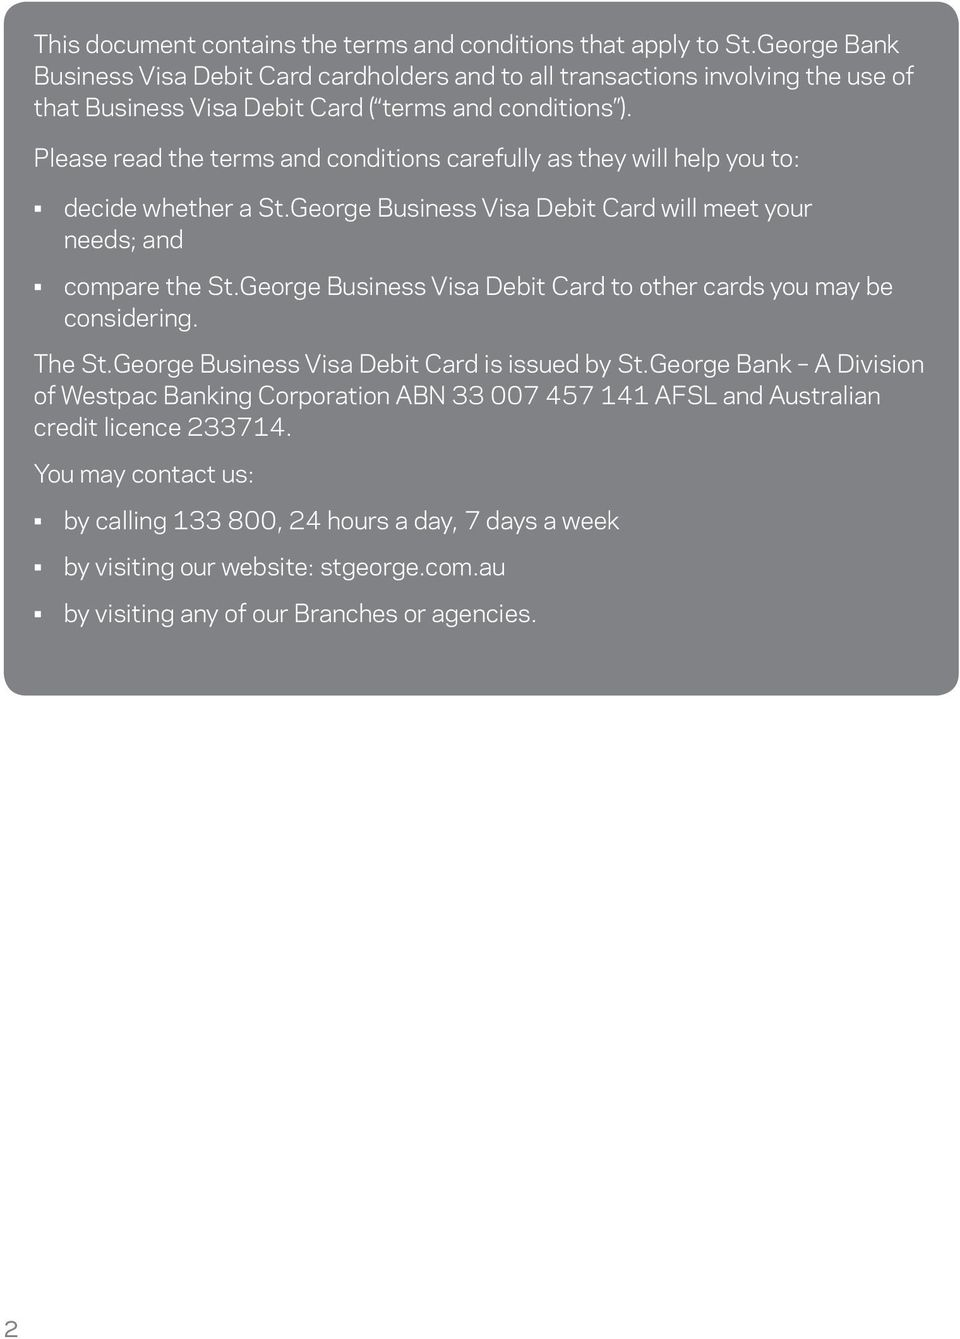 Please read the terms and conditions carefully as they will help you to: decide whether a St.George Business Visa Debit Card will meet your needs; and compare the St.